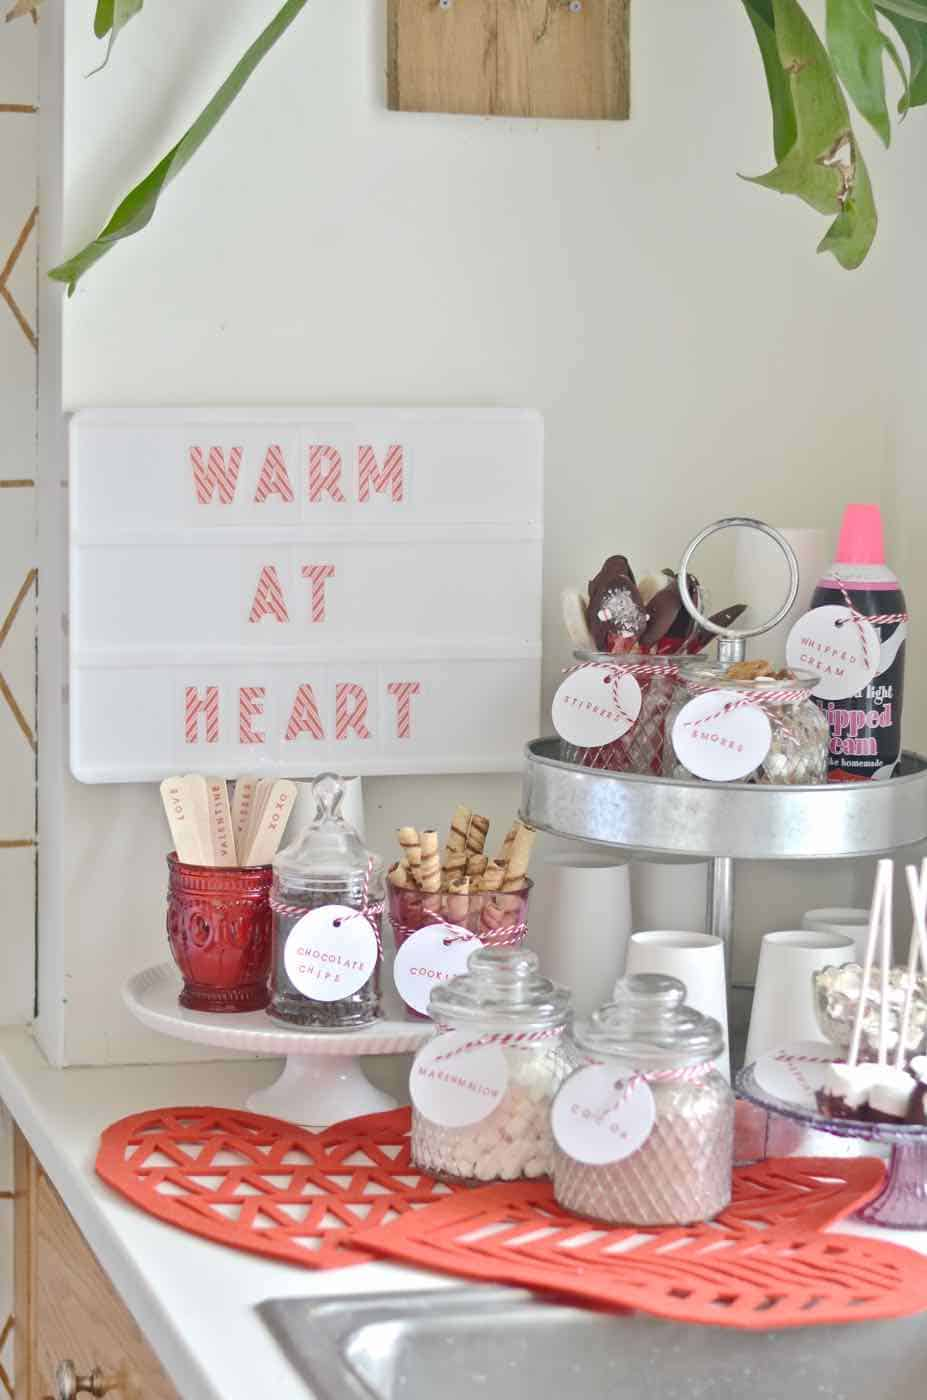 Make your own sweet and decadent DIY hot chocolate station.